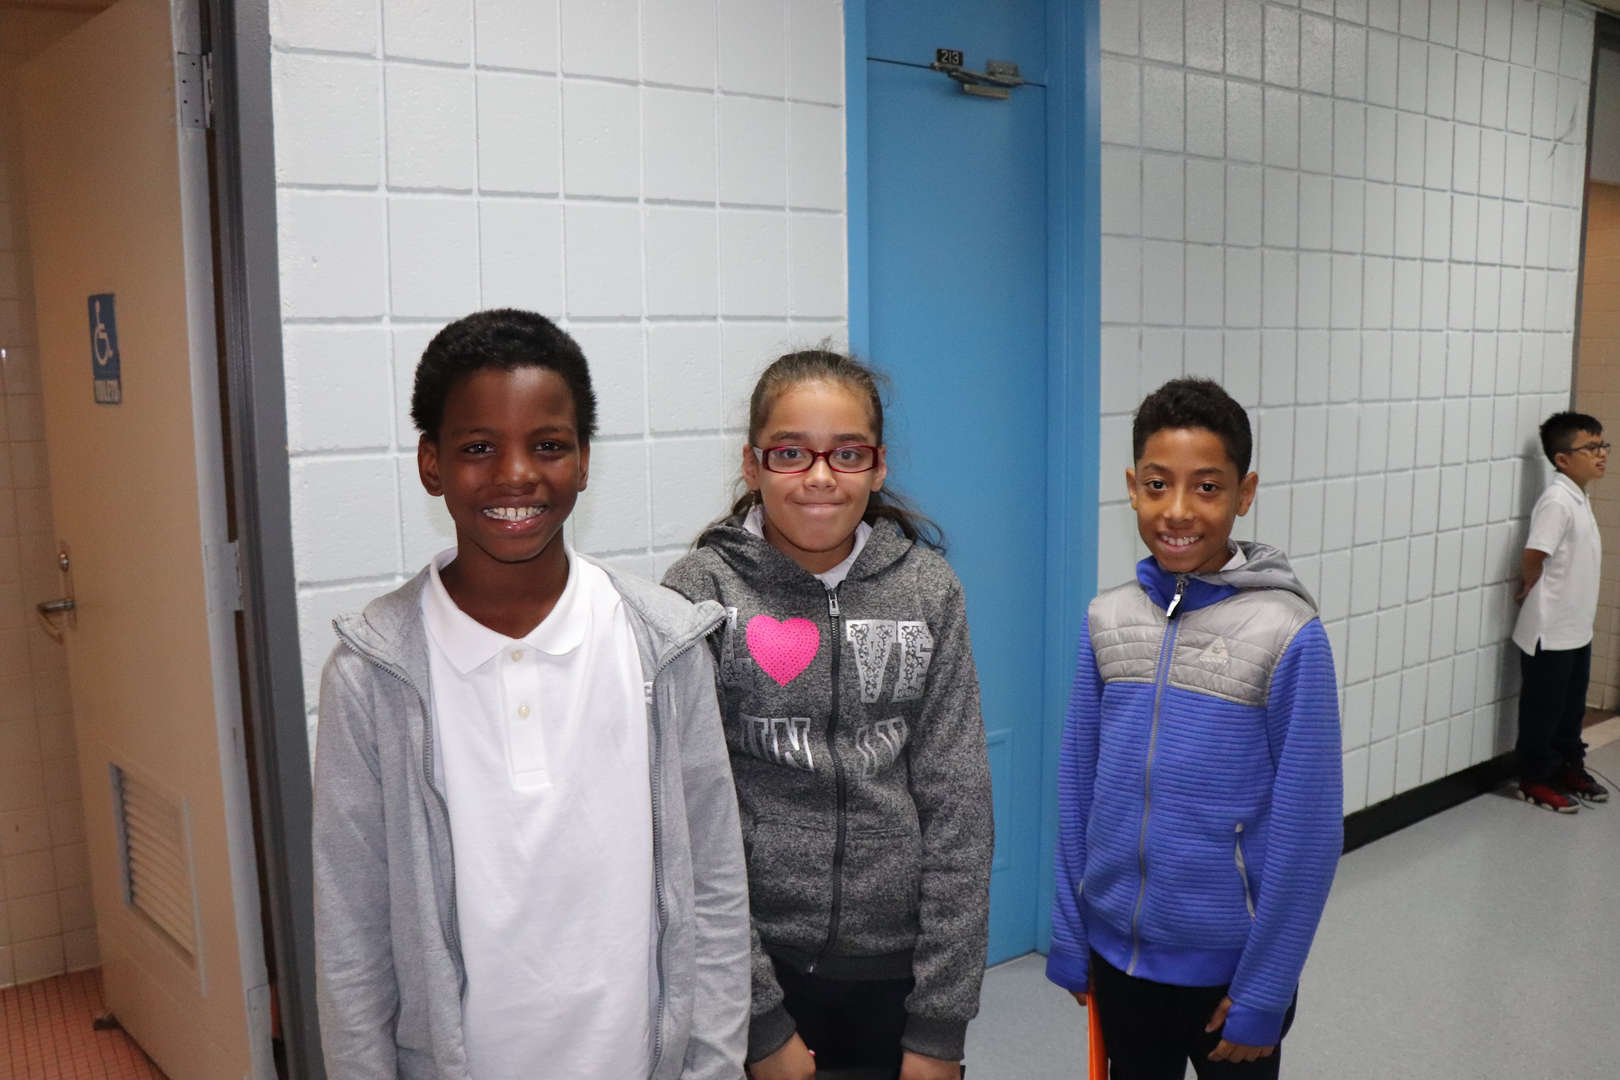 Fifth grade students walking to class.